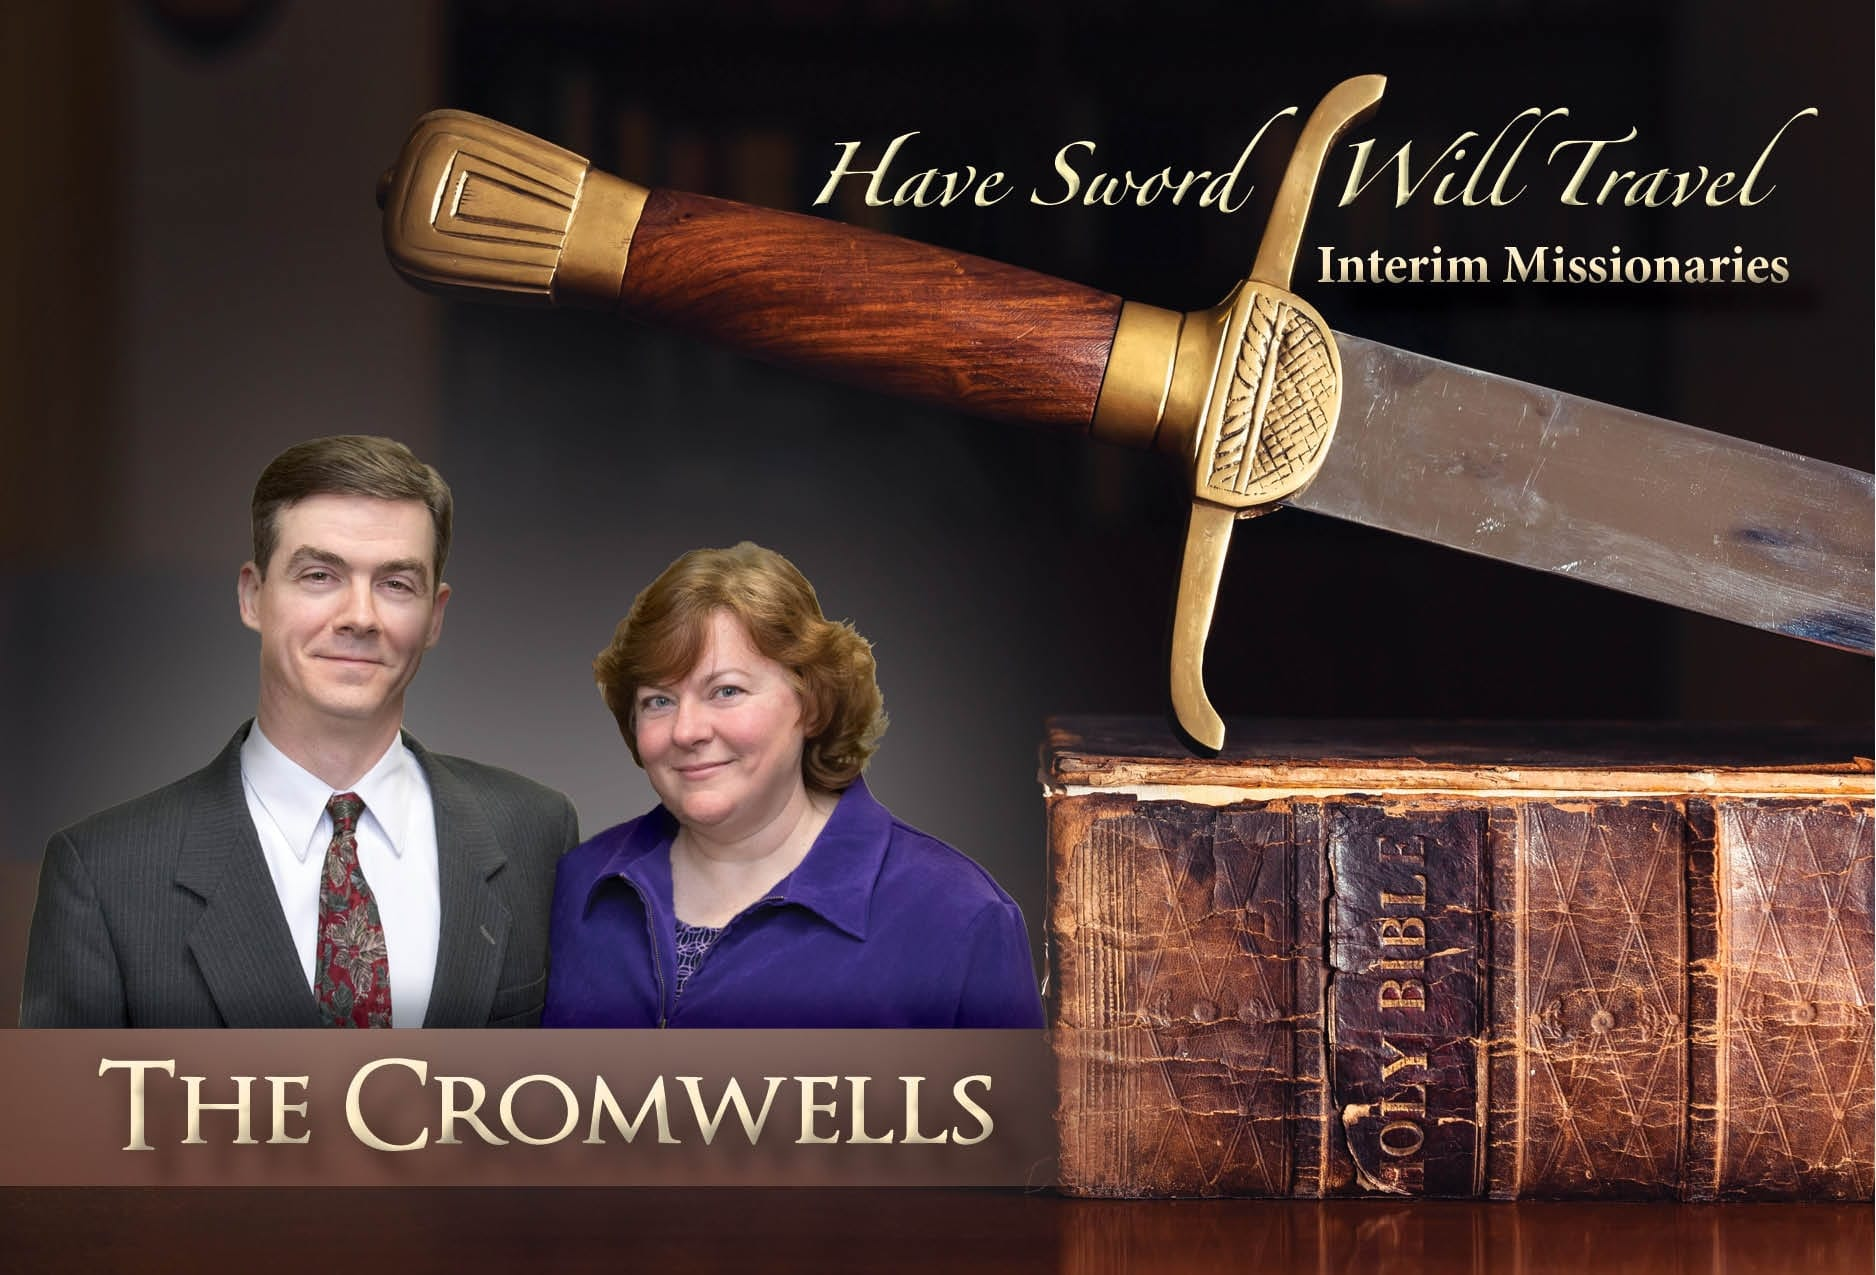 Cromwell Prayer Card - 2016